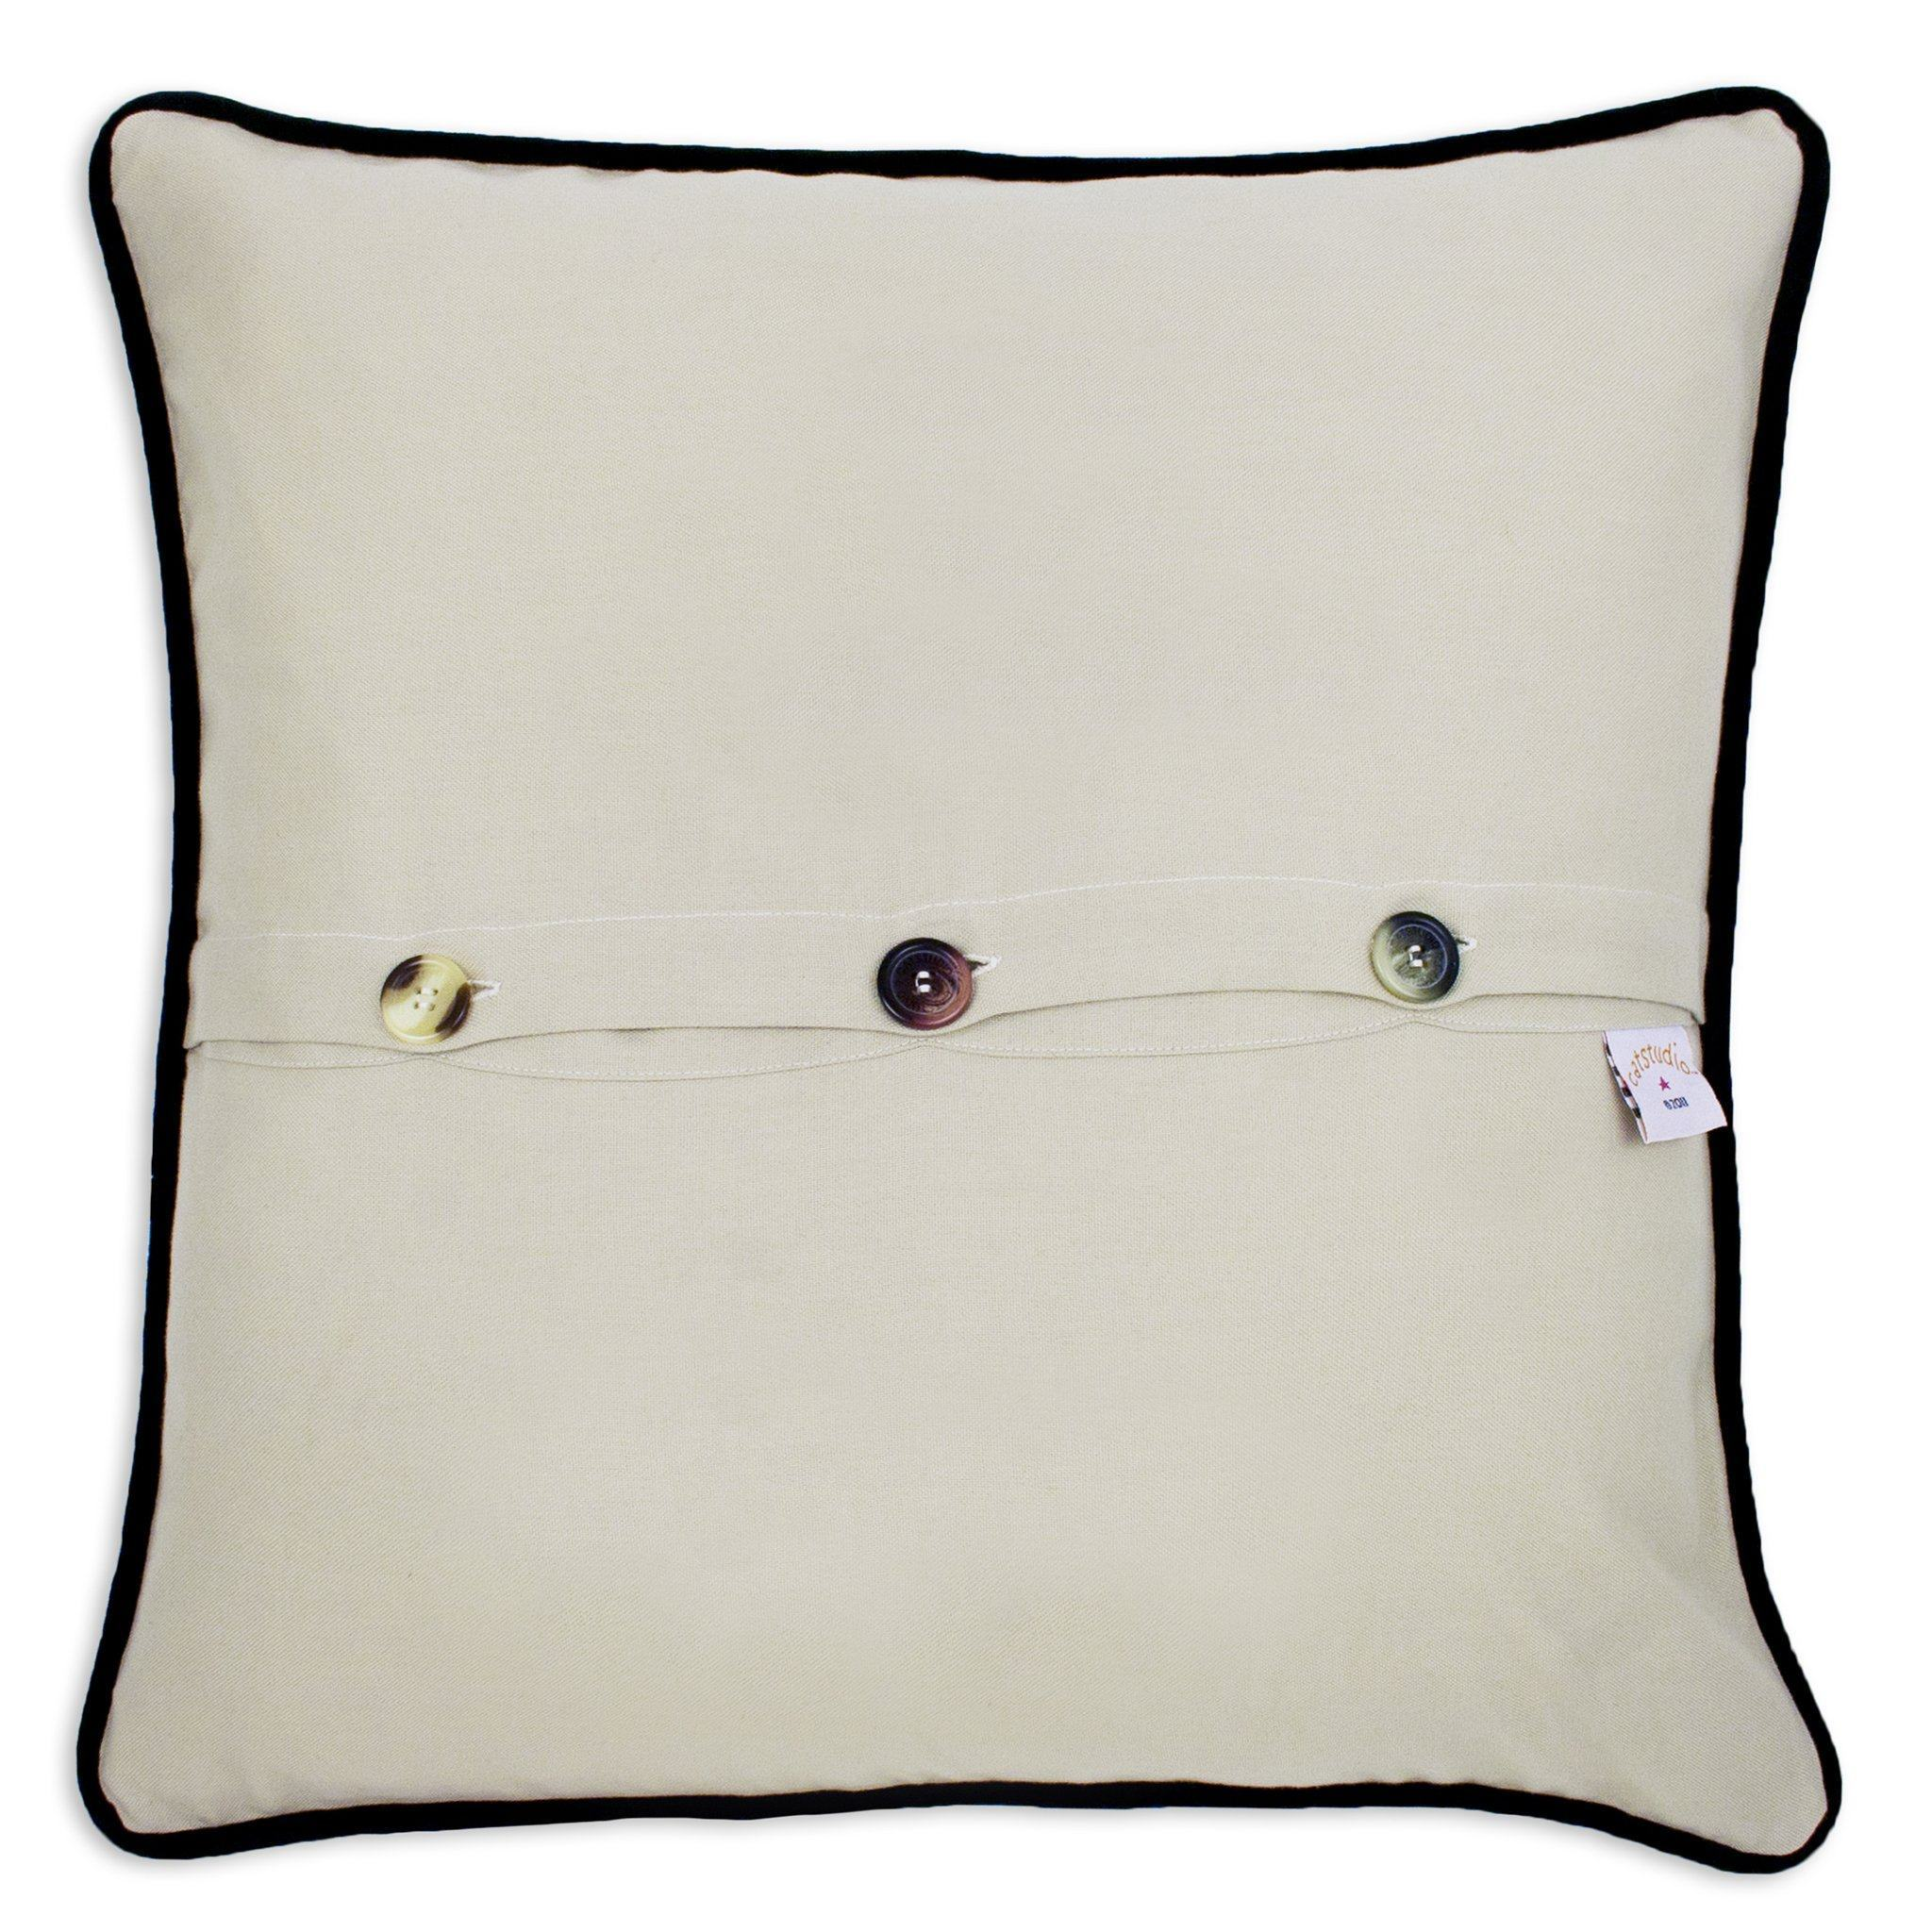 San Francisco City Hand-Embroidered Pillow